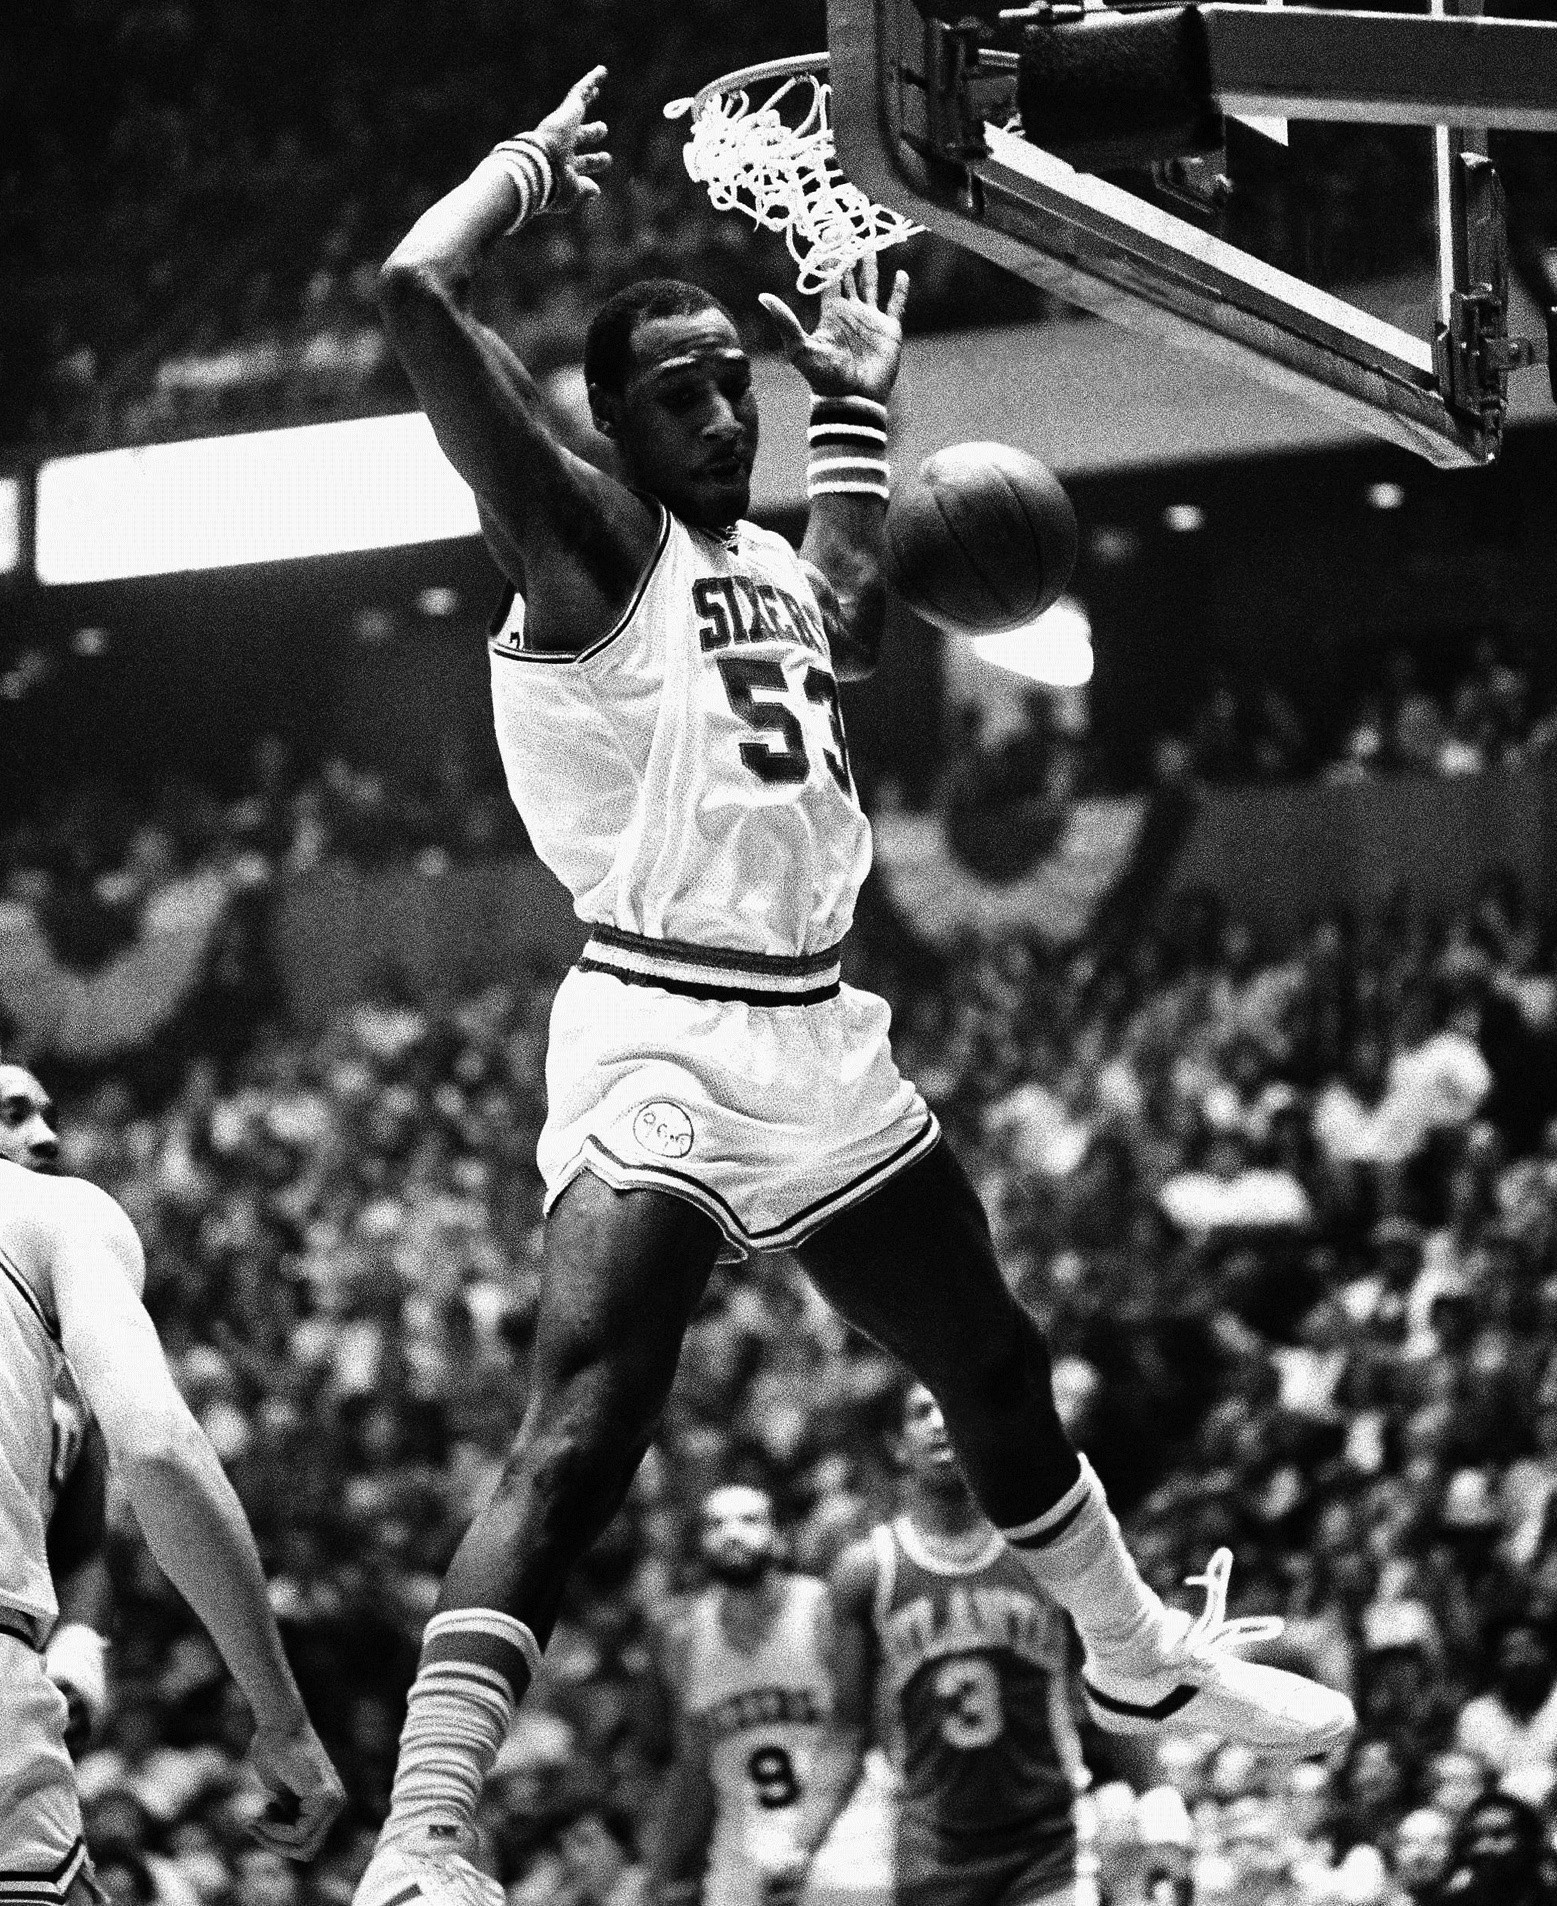 "In this April 15, 1980, file photo, Philadelphia 76ers' Darryl Dawkins dunks against the Atlanta Hawks in an NBA playoff game in Philadelphia. Darryl Dawkins, whose backboard-shattering dunks earned him the moniker ""Chocolate Thunder"" and helped pave the way for breakaway rims, has died. He was 58. The Lehigh County, Pennsylvania coroner's office said Dawkins died Thursday morning at a hospital."